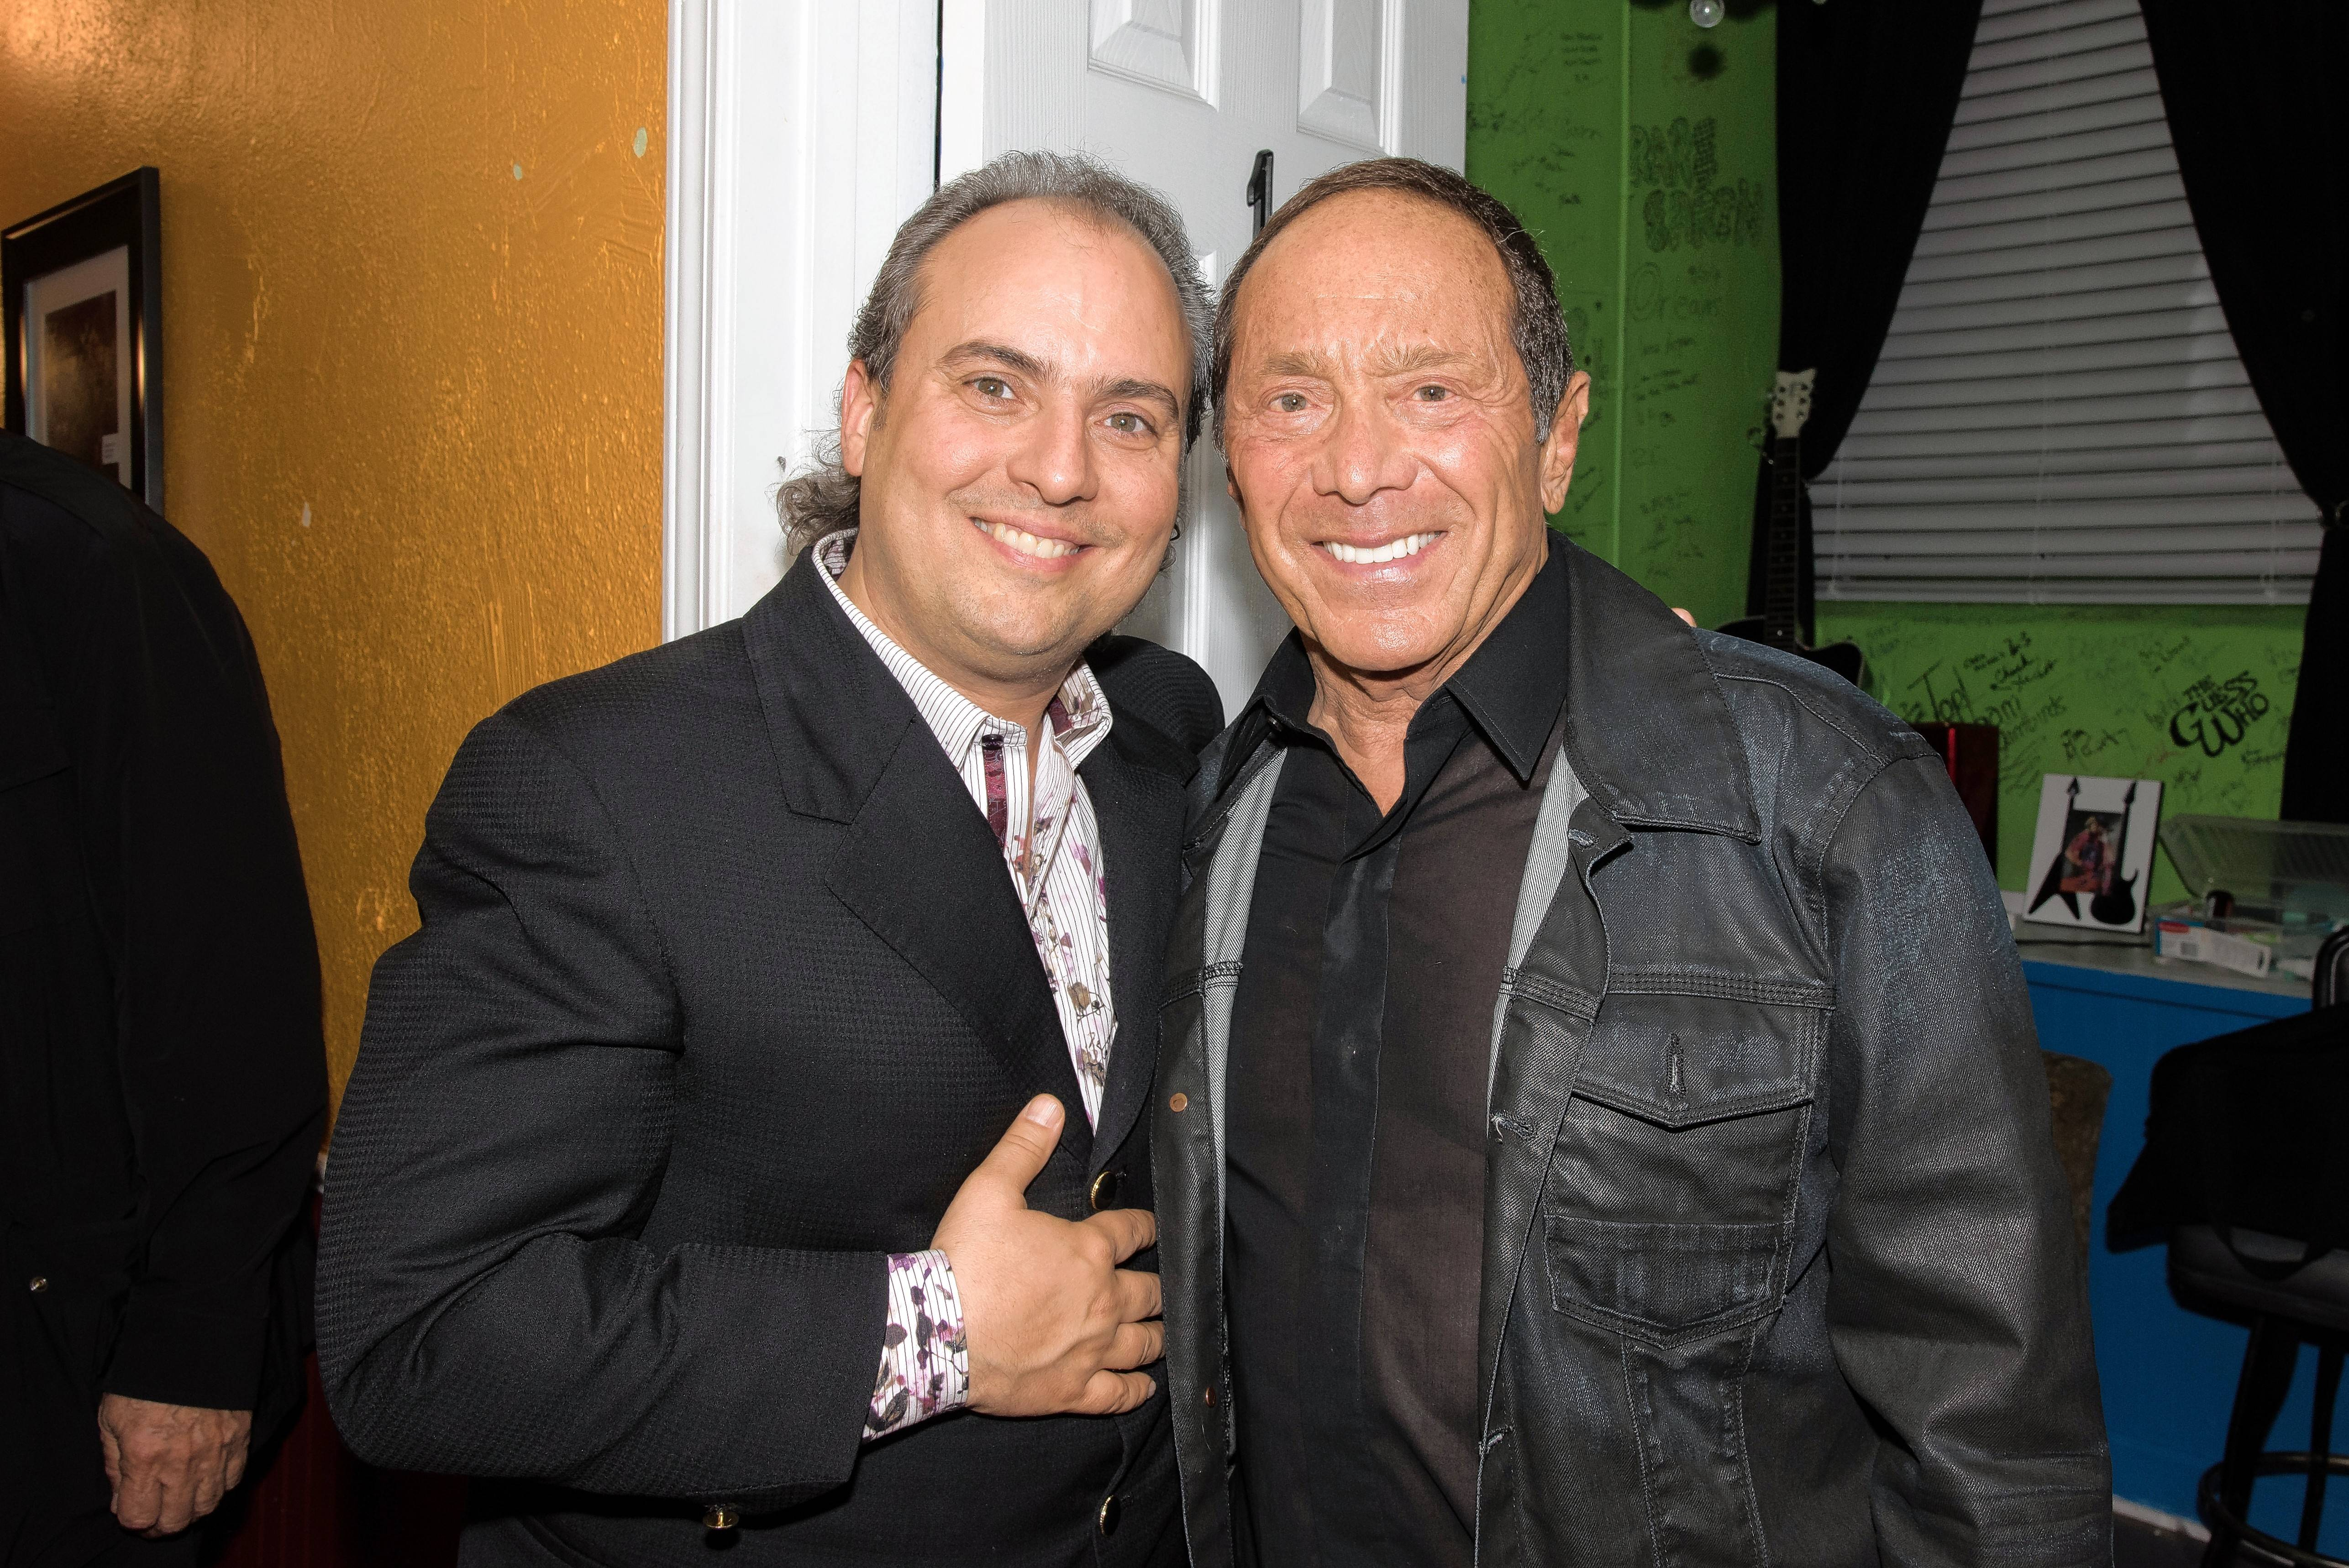 Singer Paul Anka, left, and the Arcada Theatre's Ron Onesti finally get together backstage.